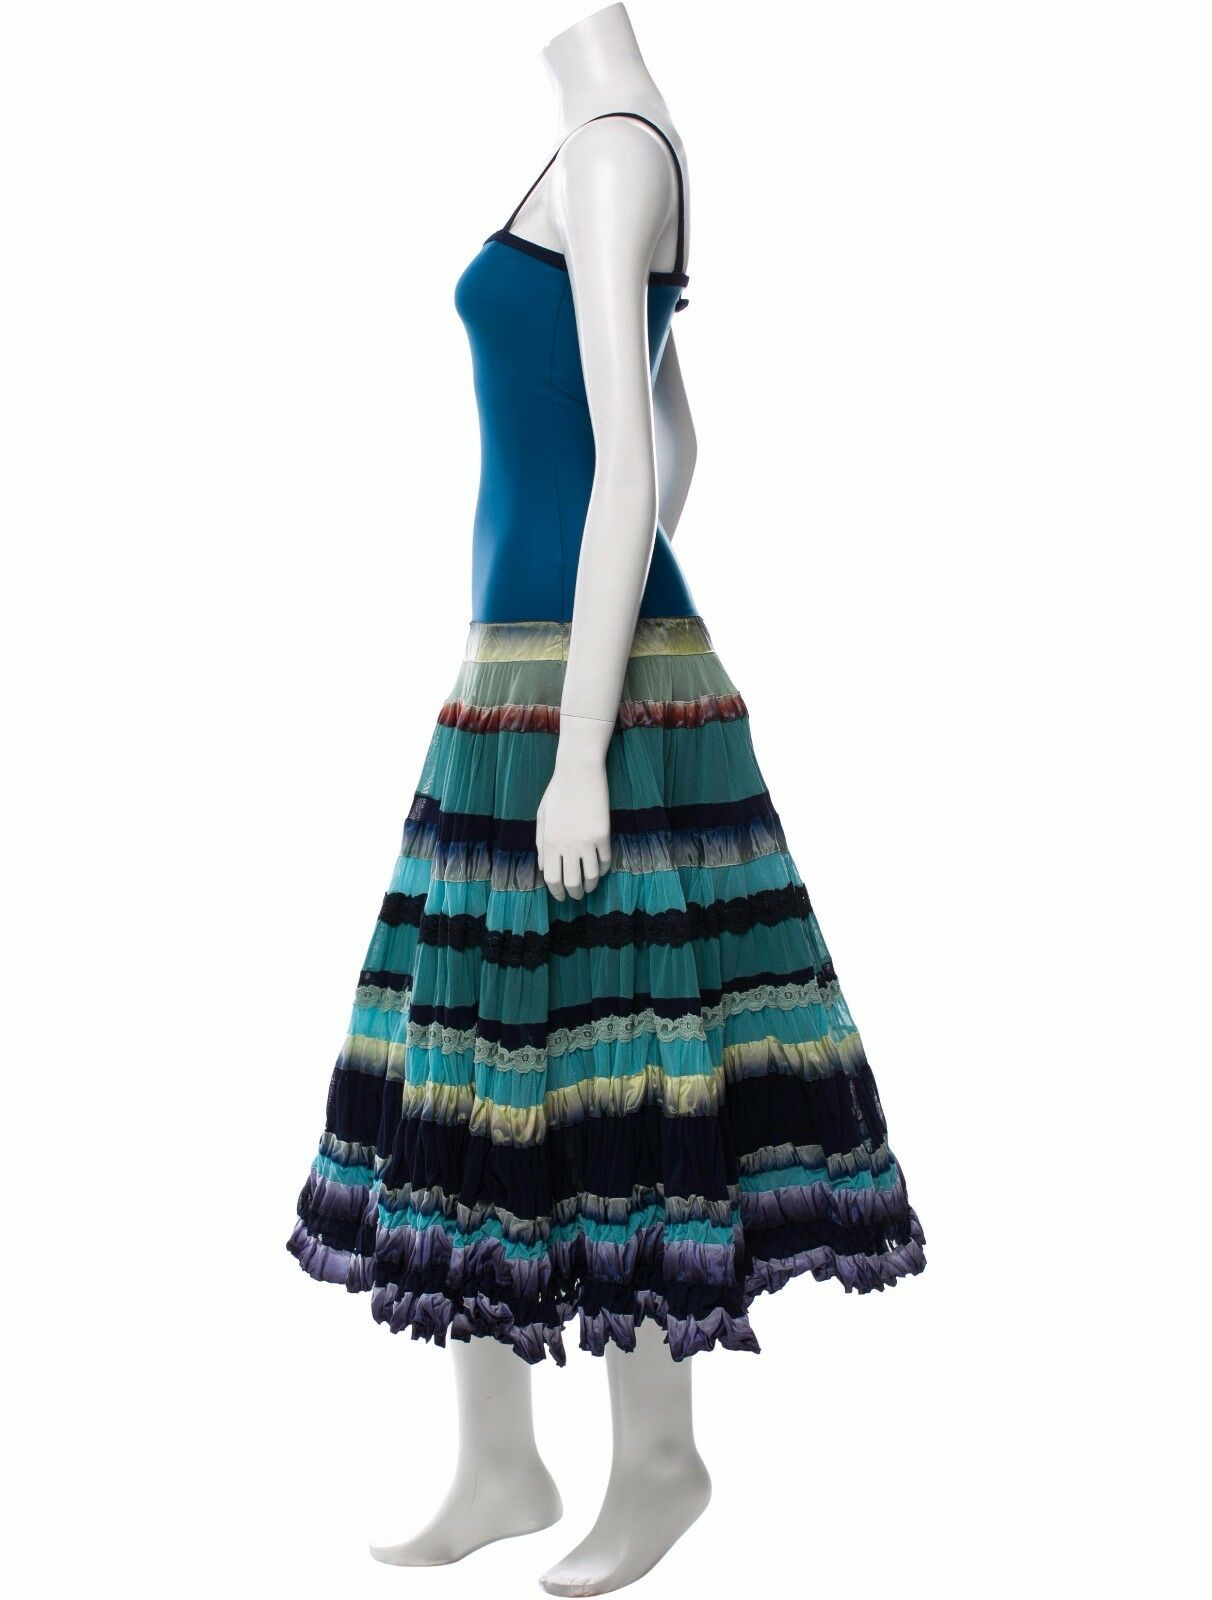 HEAD TURNING NEW  4,300 JEAN PAUL GAULTIER DRESS IN IN IN GORGEOUS SHADES OF blueE b75e32